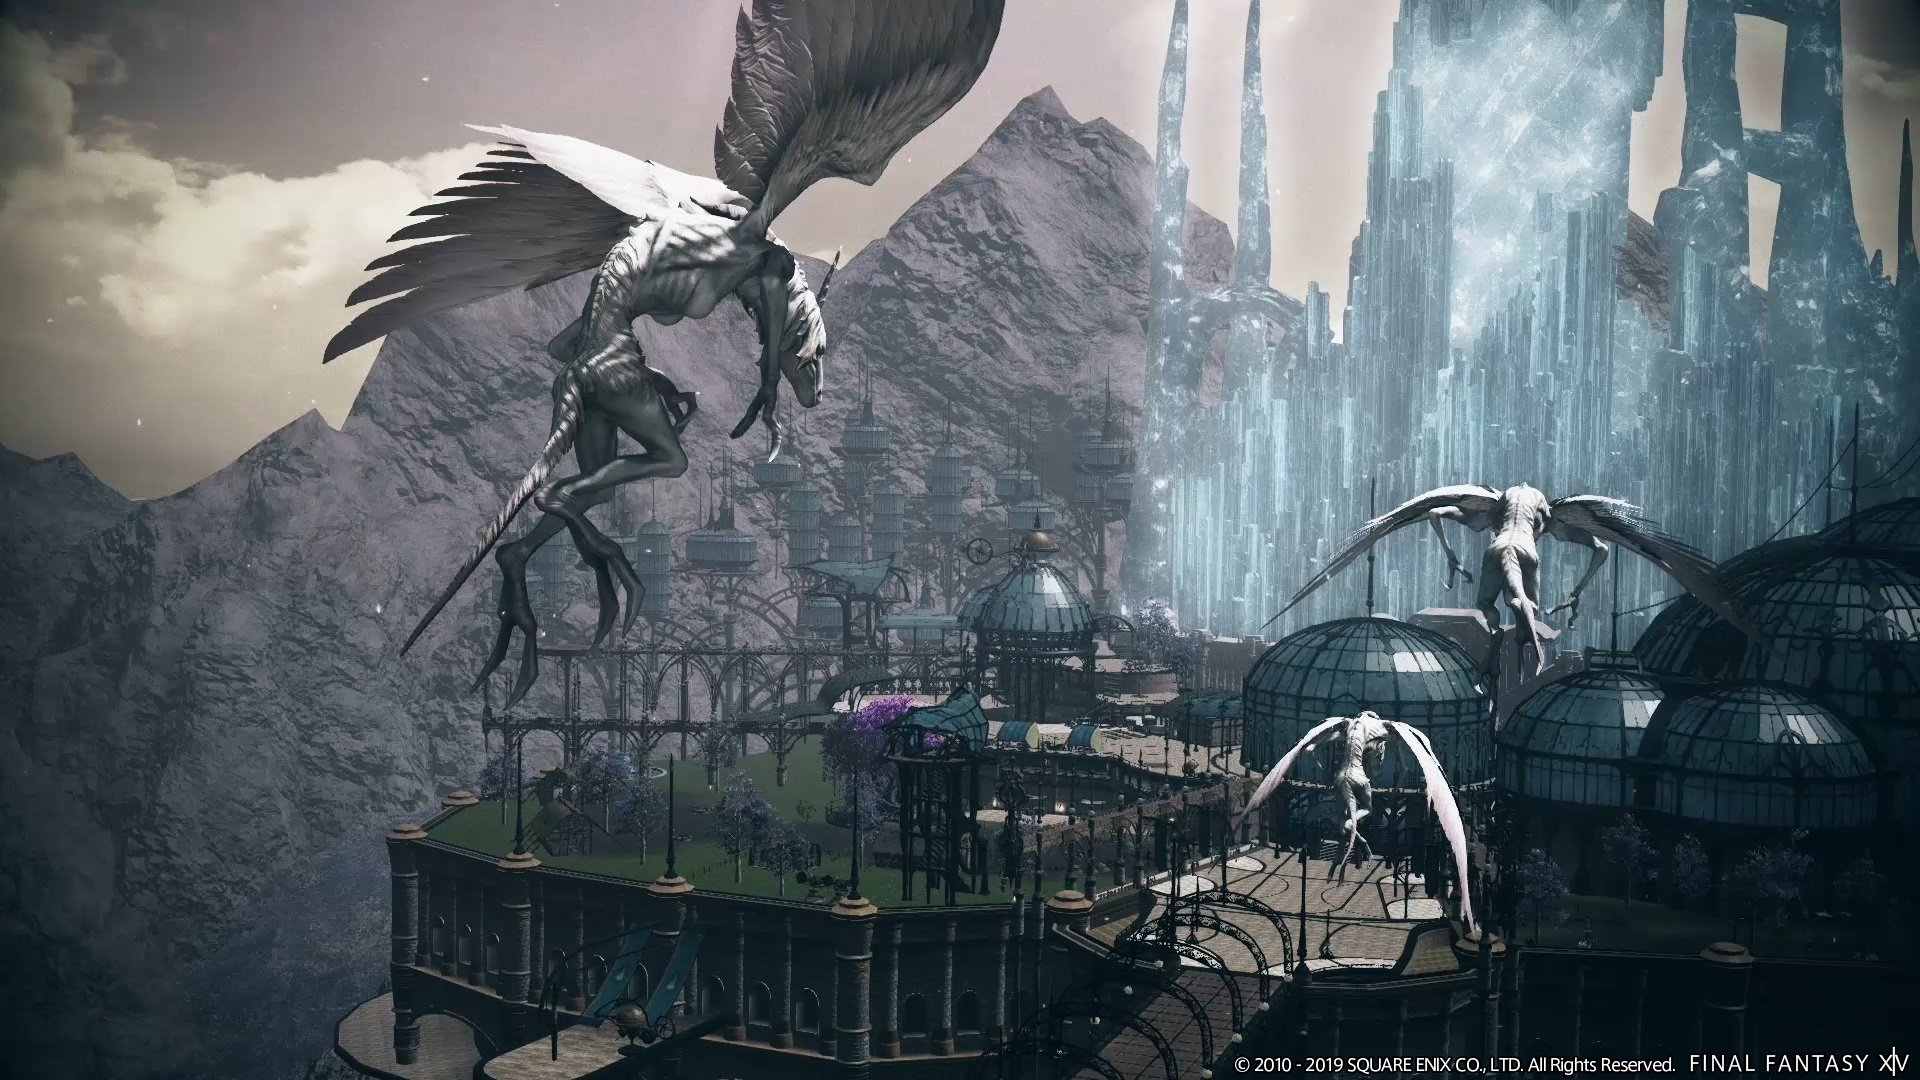 Final Fantasy 14 interview: Shadowbringers and six years of A Realm Reborn